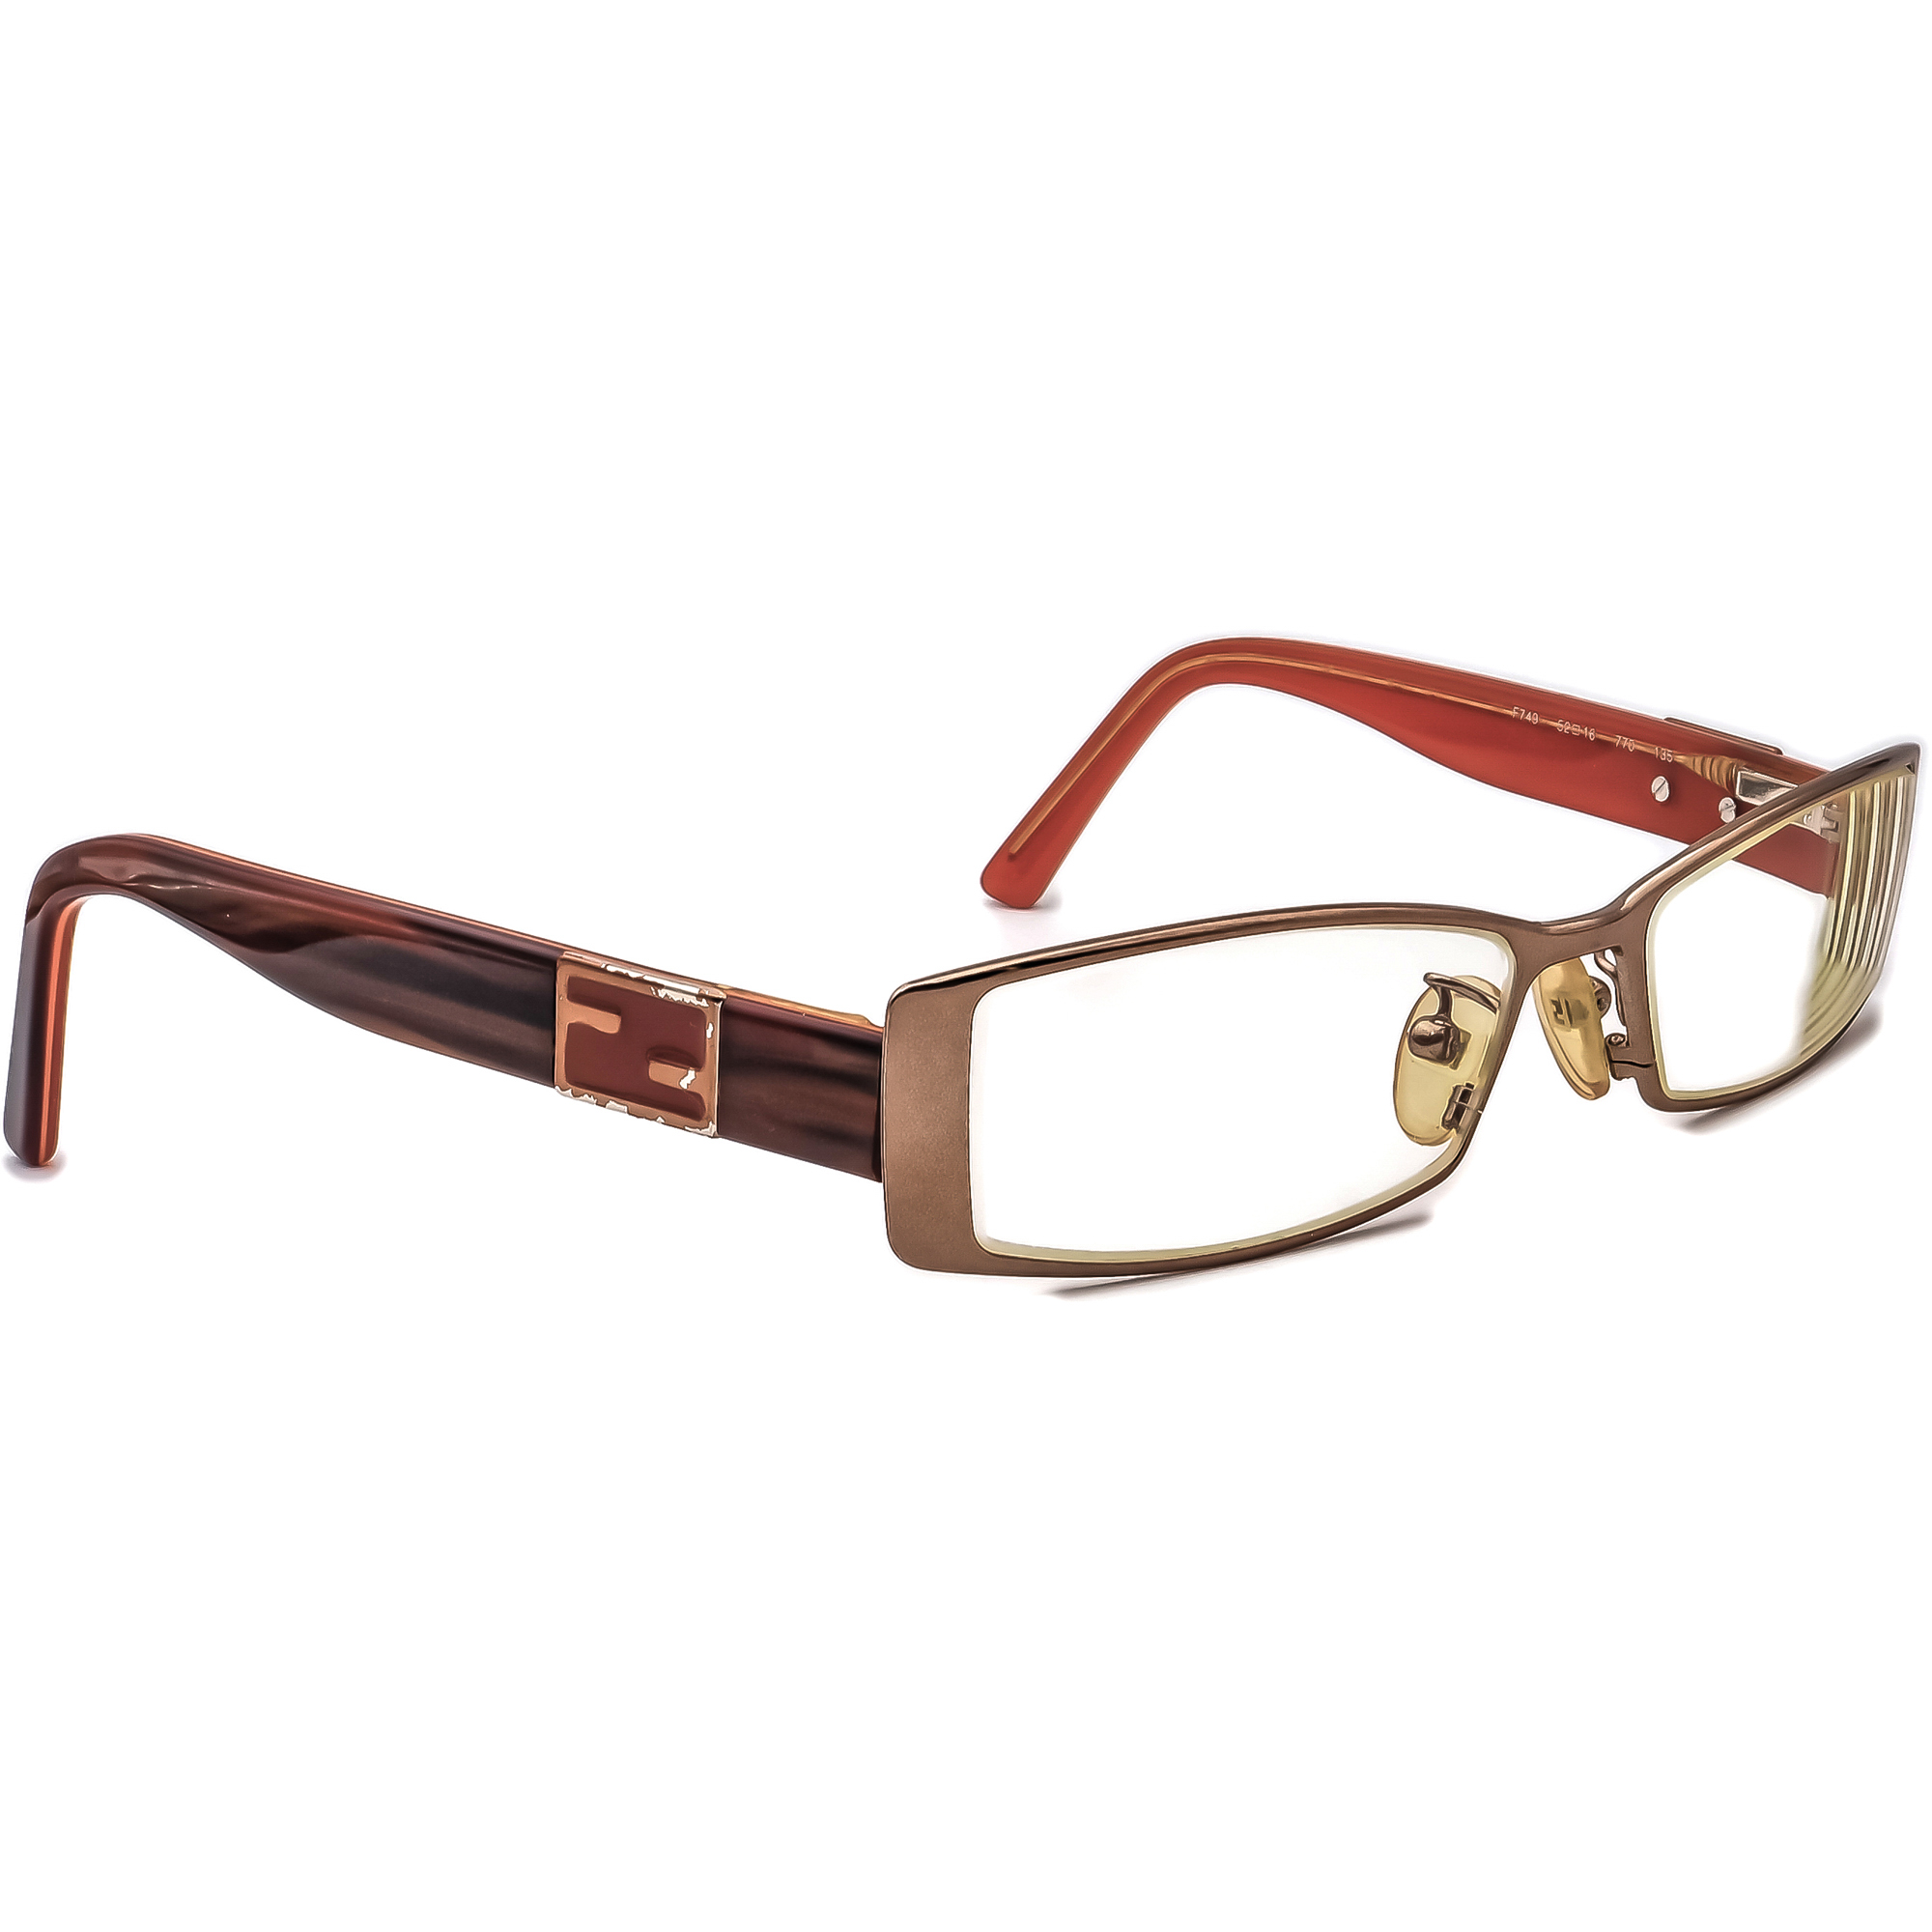 Fendi F749 770 Eyeglasses